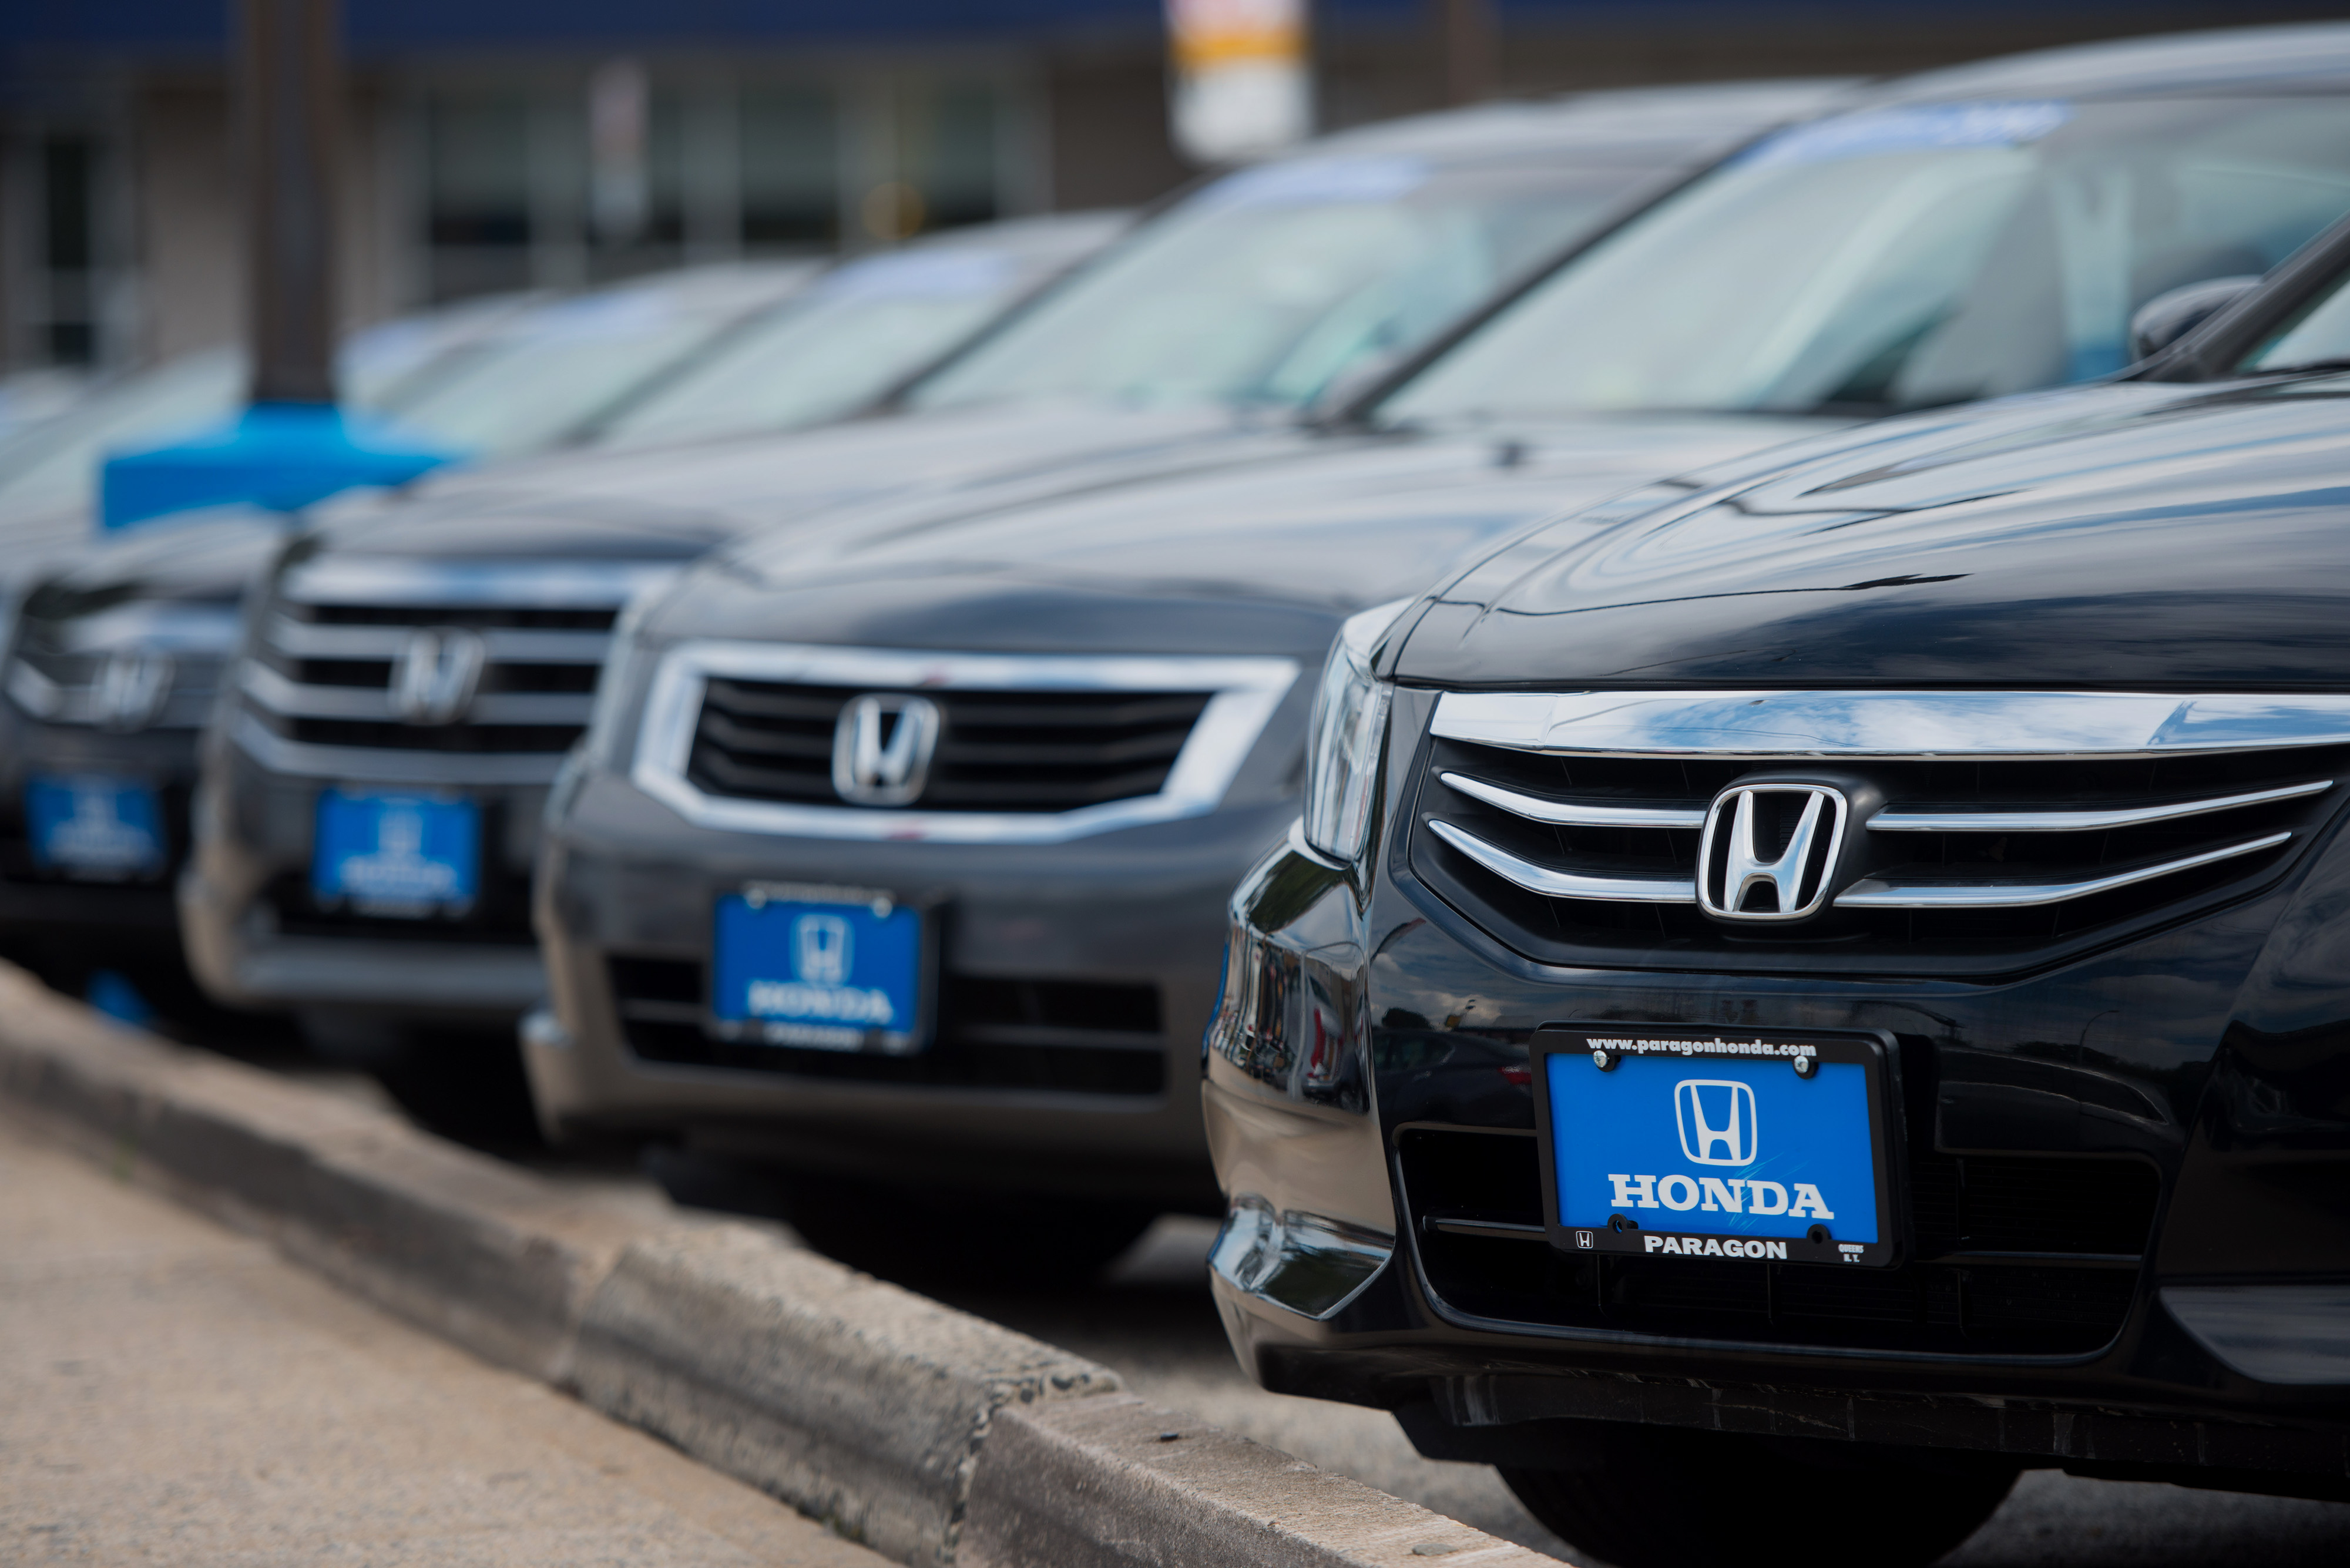 Honda Motor Co. vehicles are displayed for sale at the Paragon Honda dealership in the Queens borough of New York, U.S., on Monday, Sept. 1, 2014.